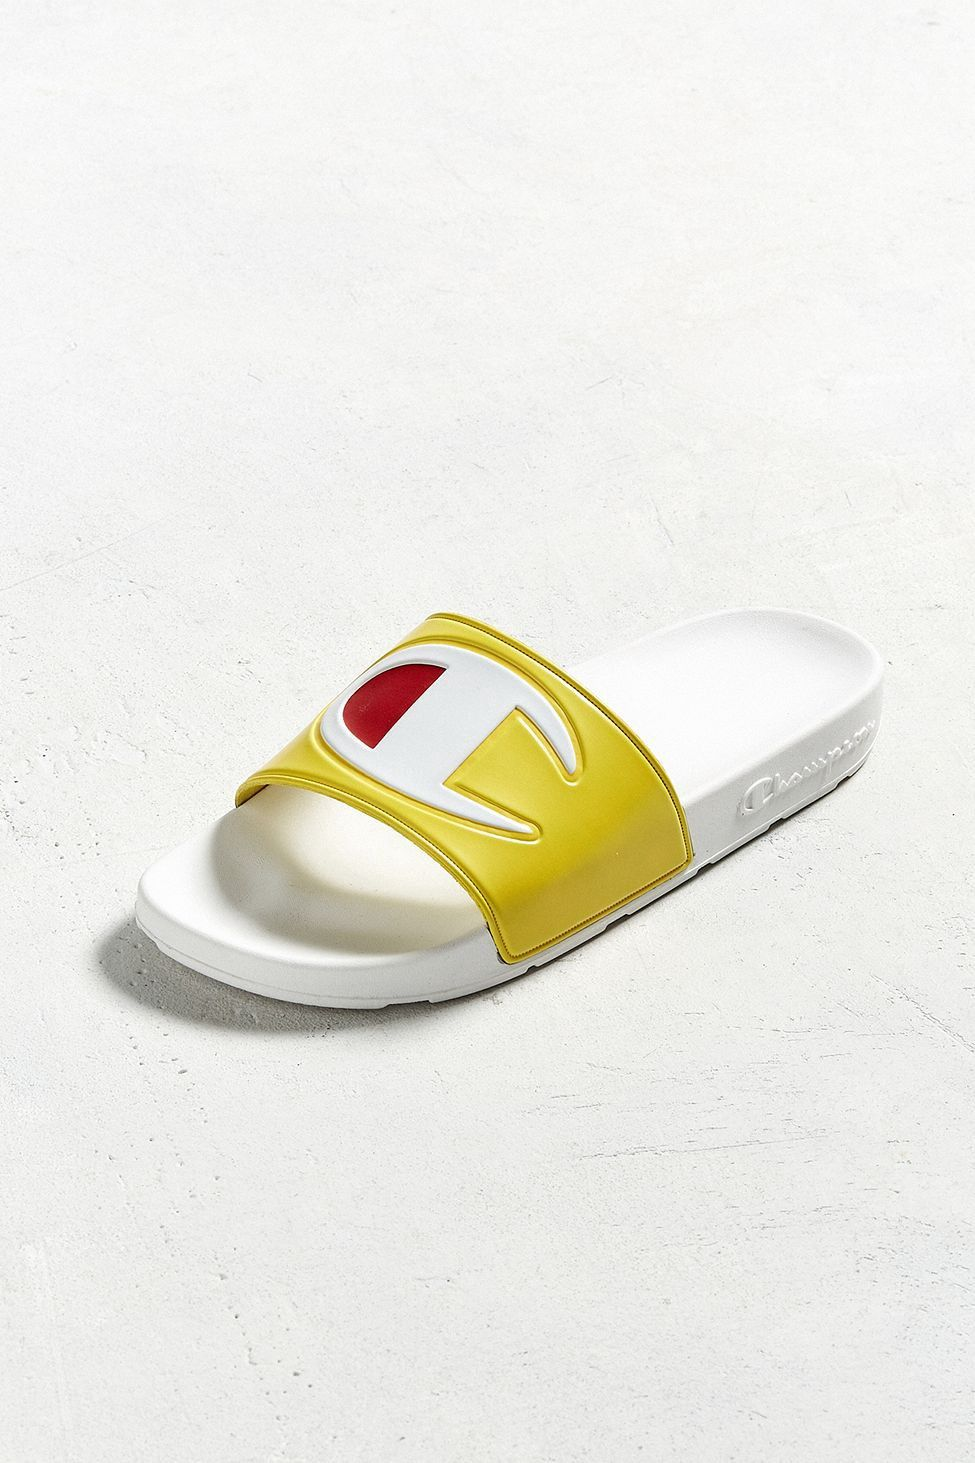 40240d90cee1c Urban Outfitters Champion Big C Logo Slide Sandal - Yellow 10 ...